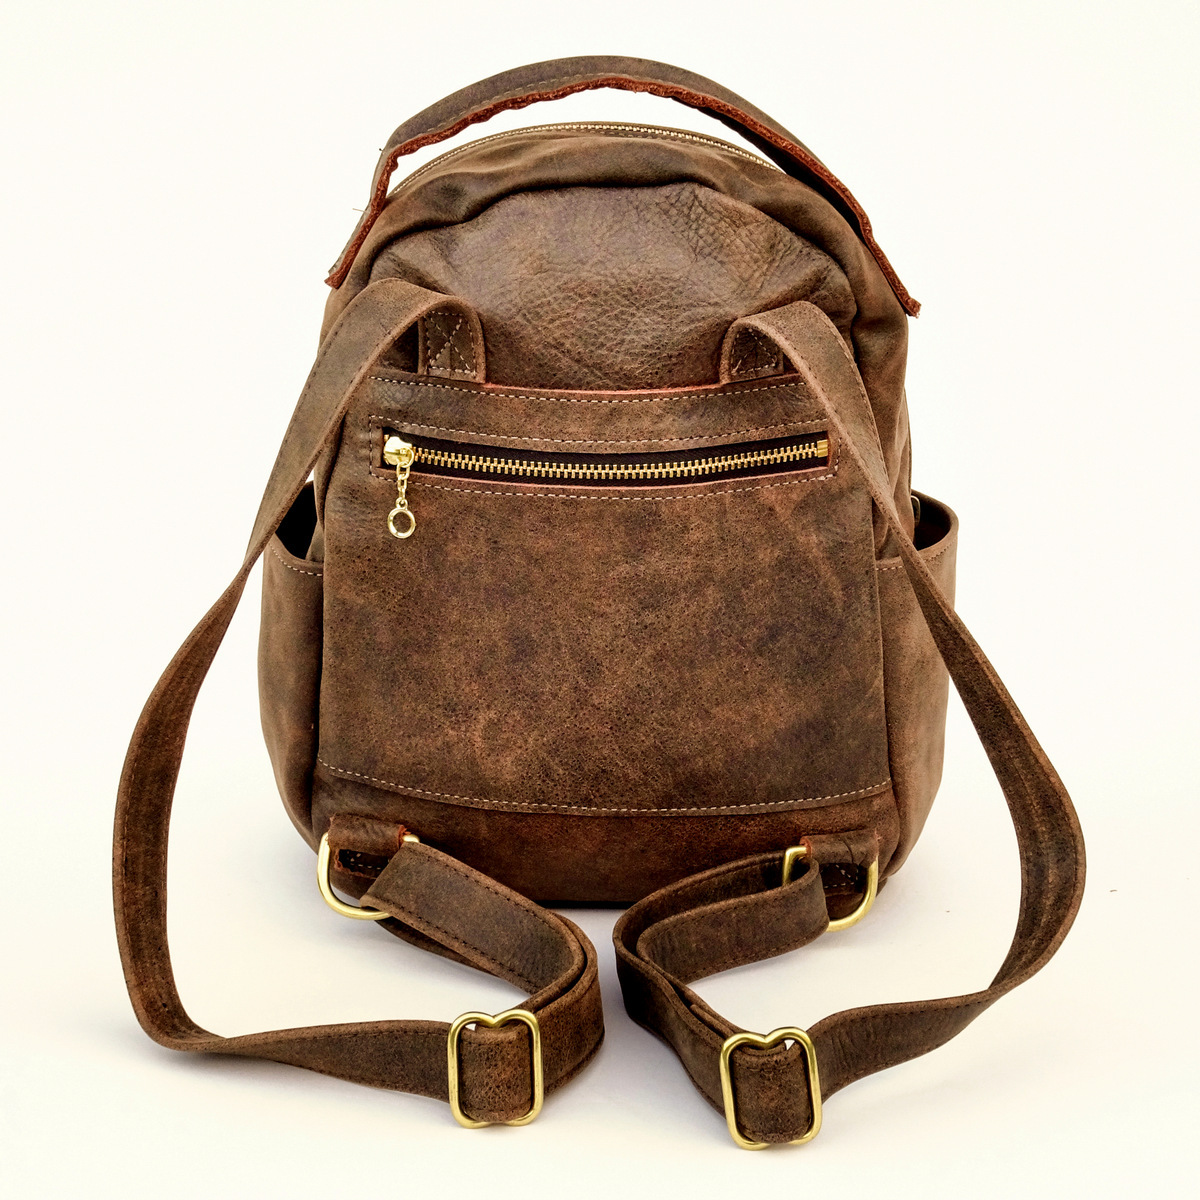 1-Handcrafted Leather Back Pack, Day Trip, LaPlace Leather, Memphis-1-008.JPG